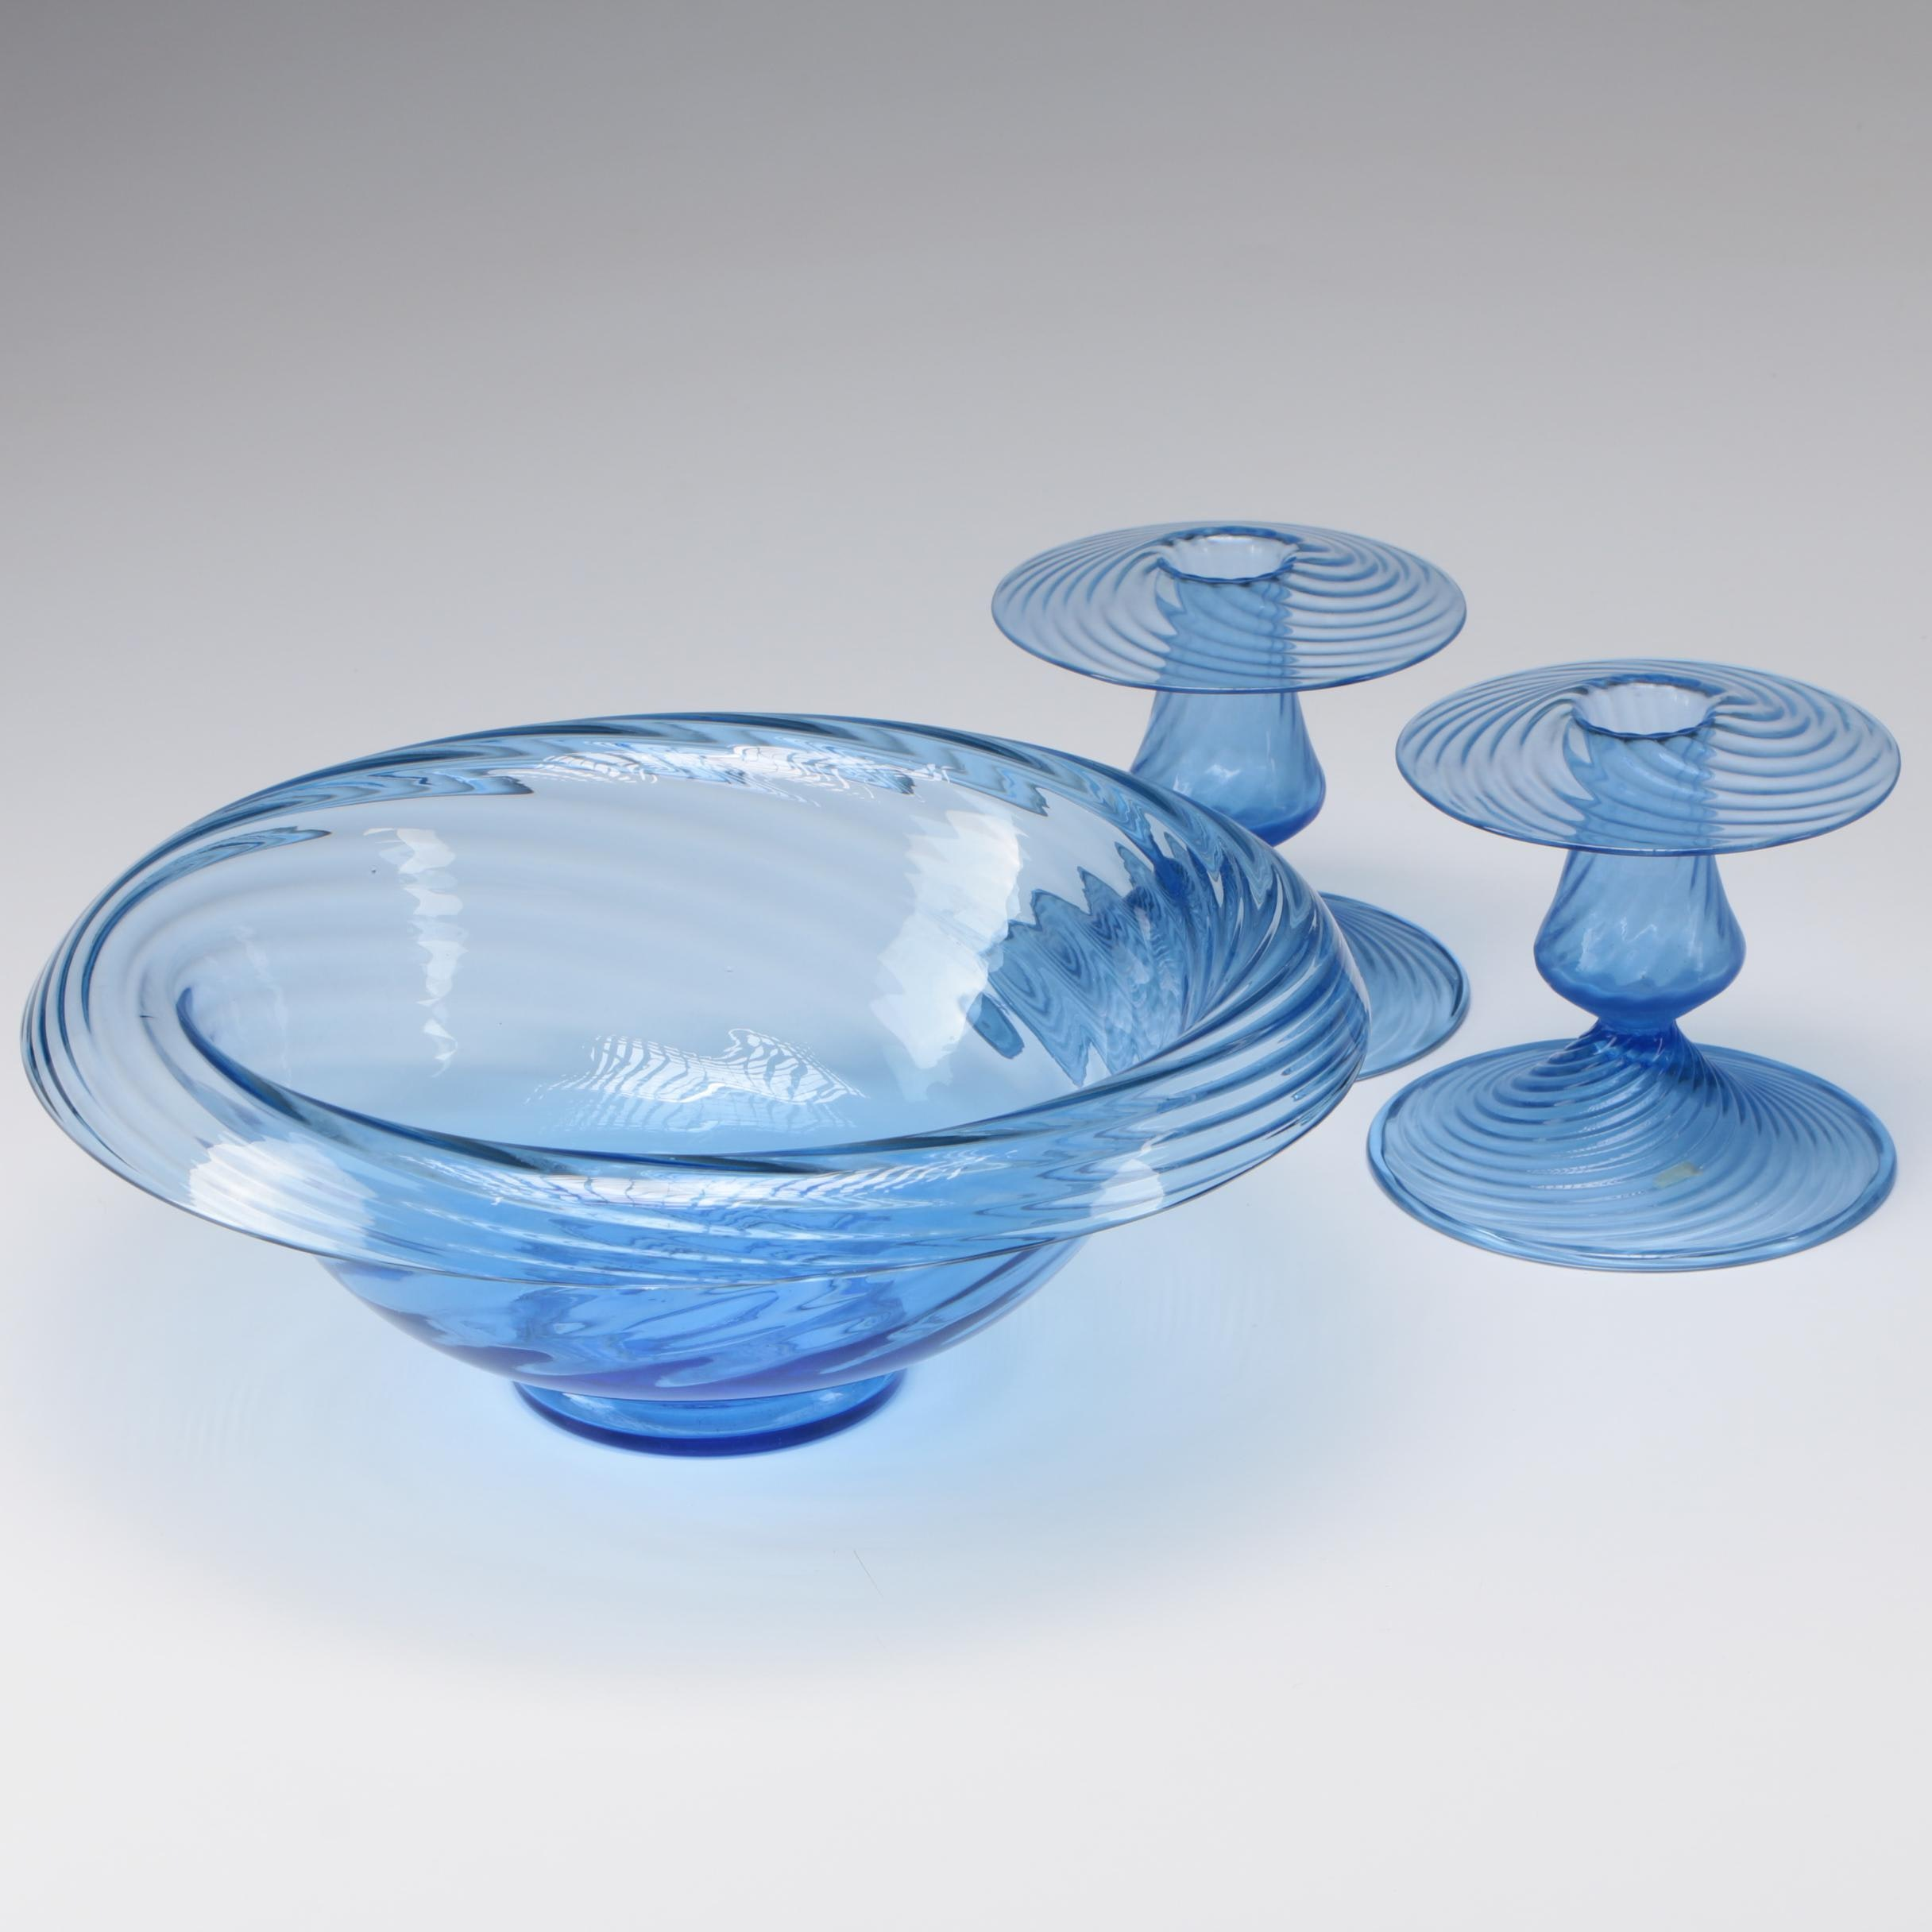 Steuben Celeste Blue Art Glass Console Bowl with Candlesticks, Early/Mid-Century